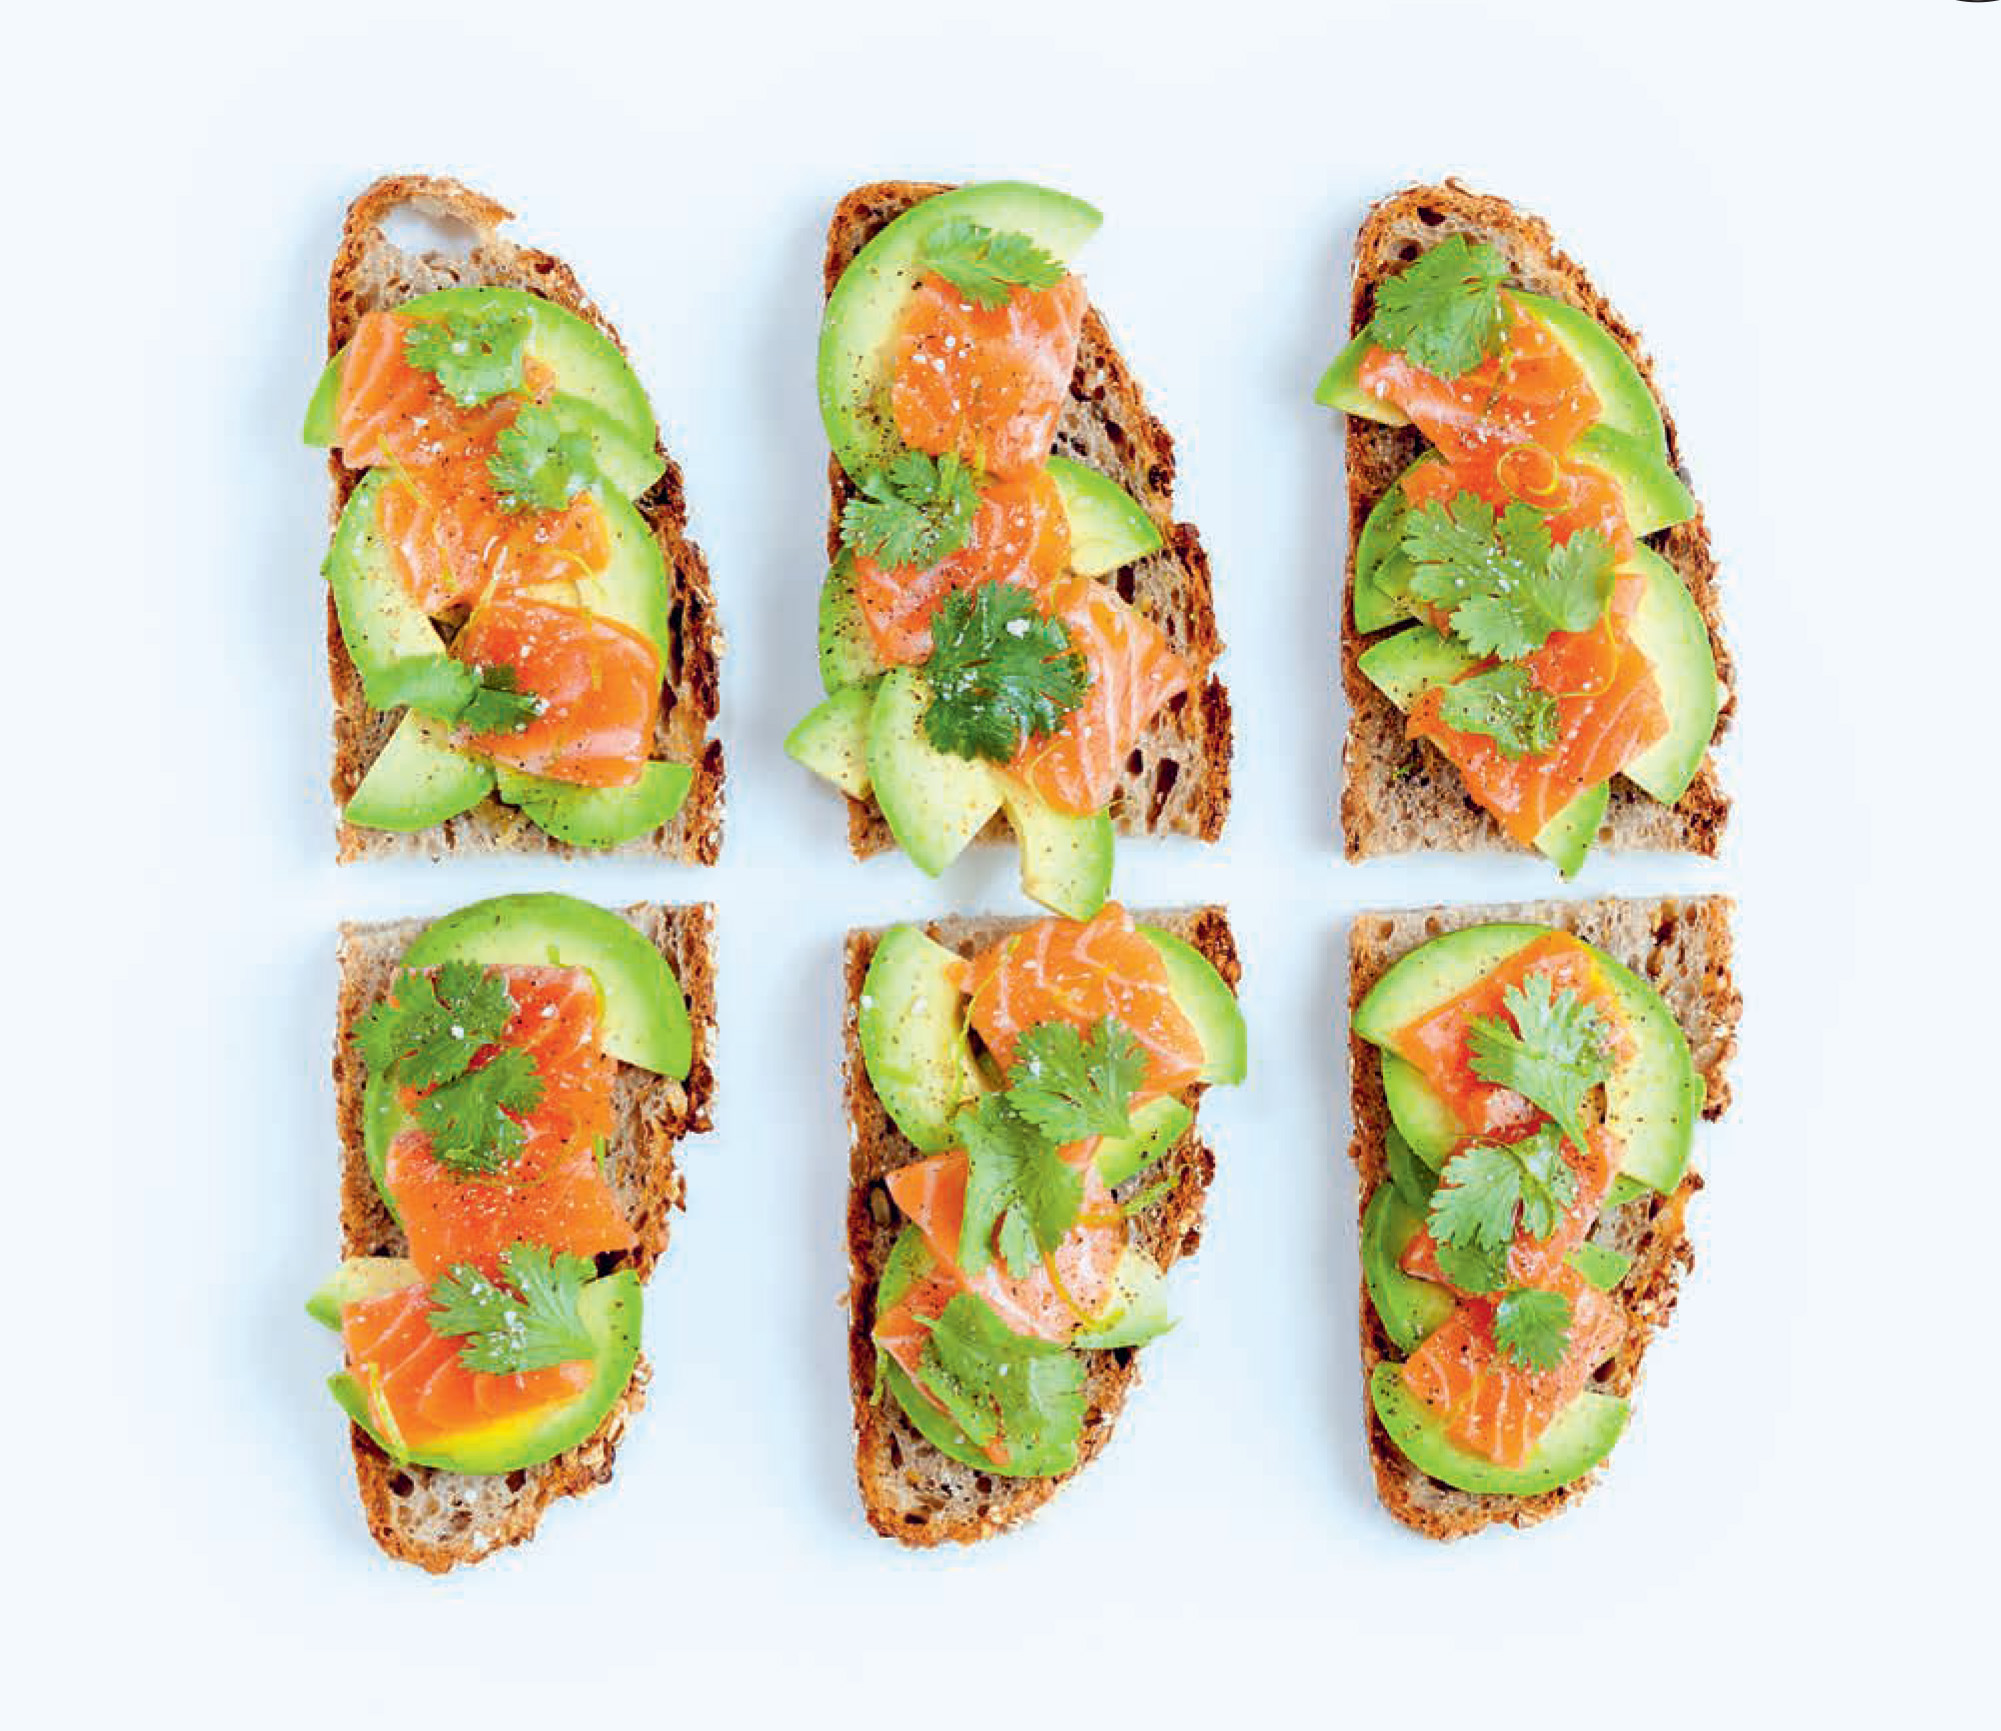 Salmon & avocado